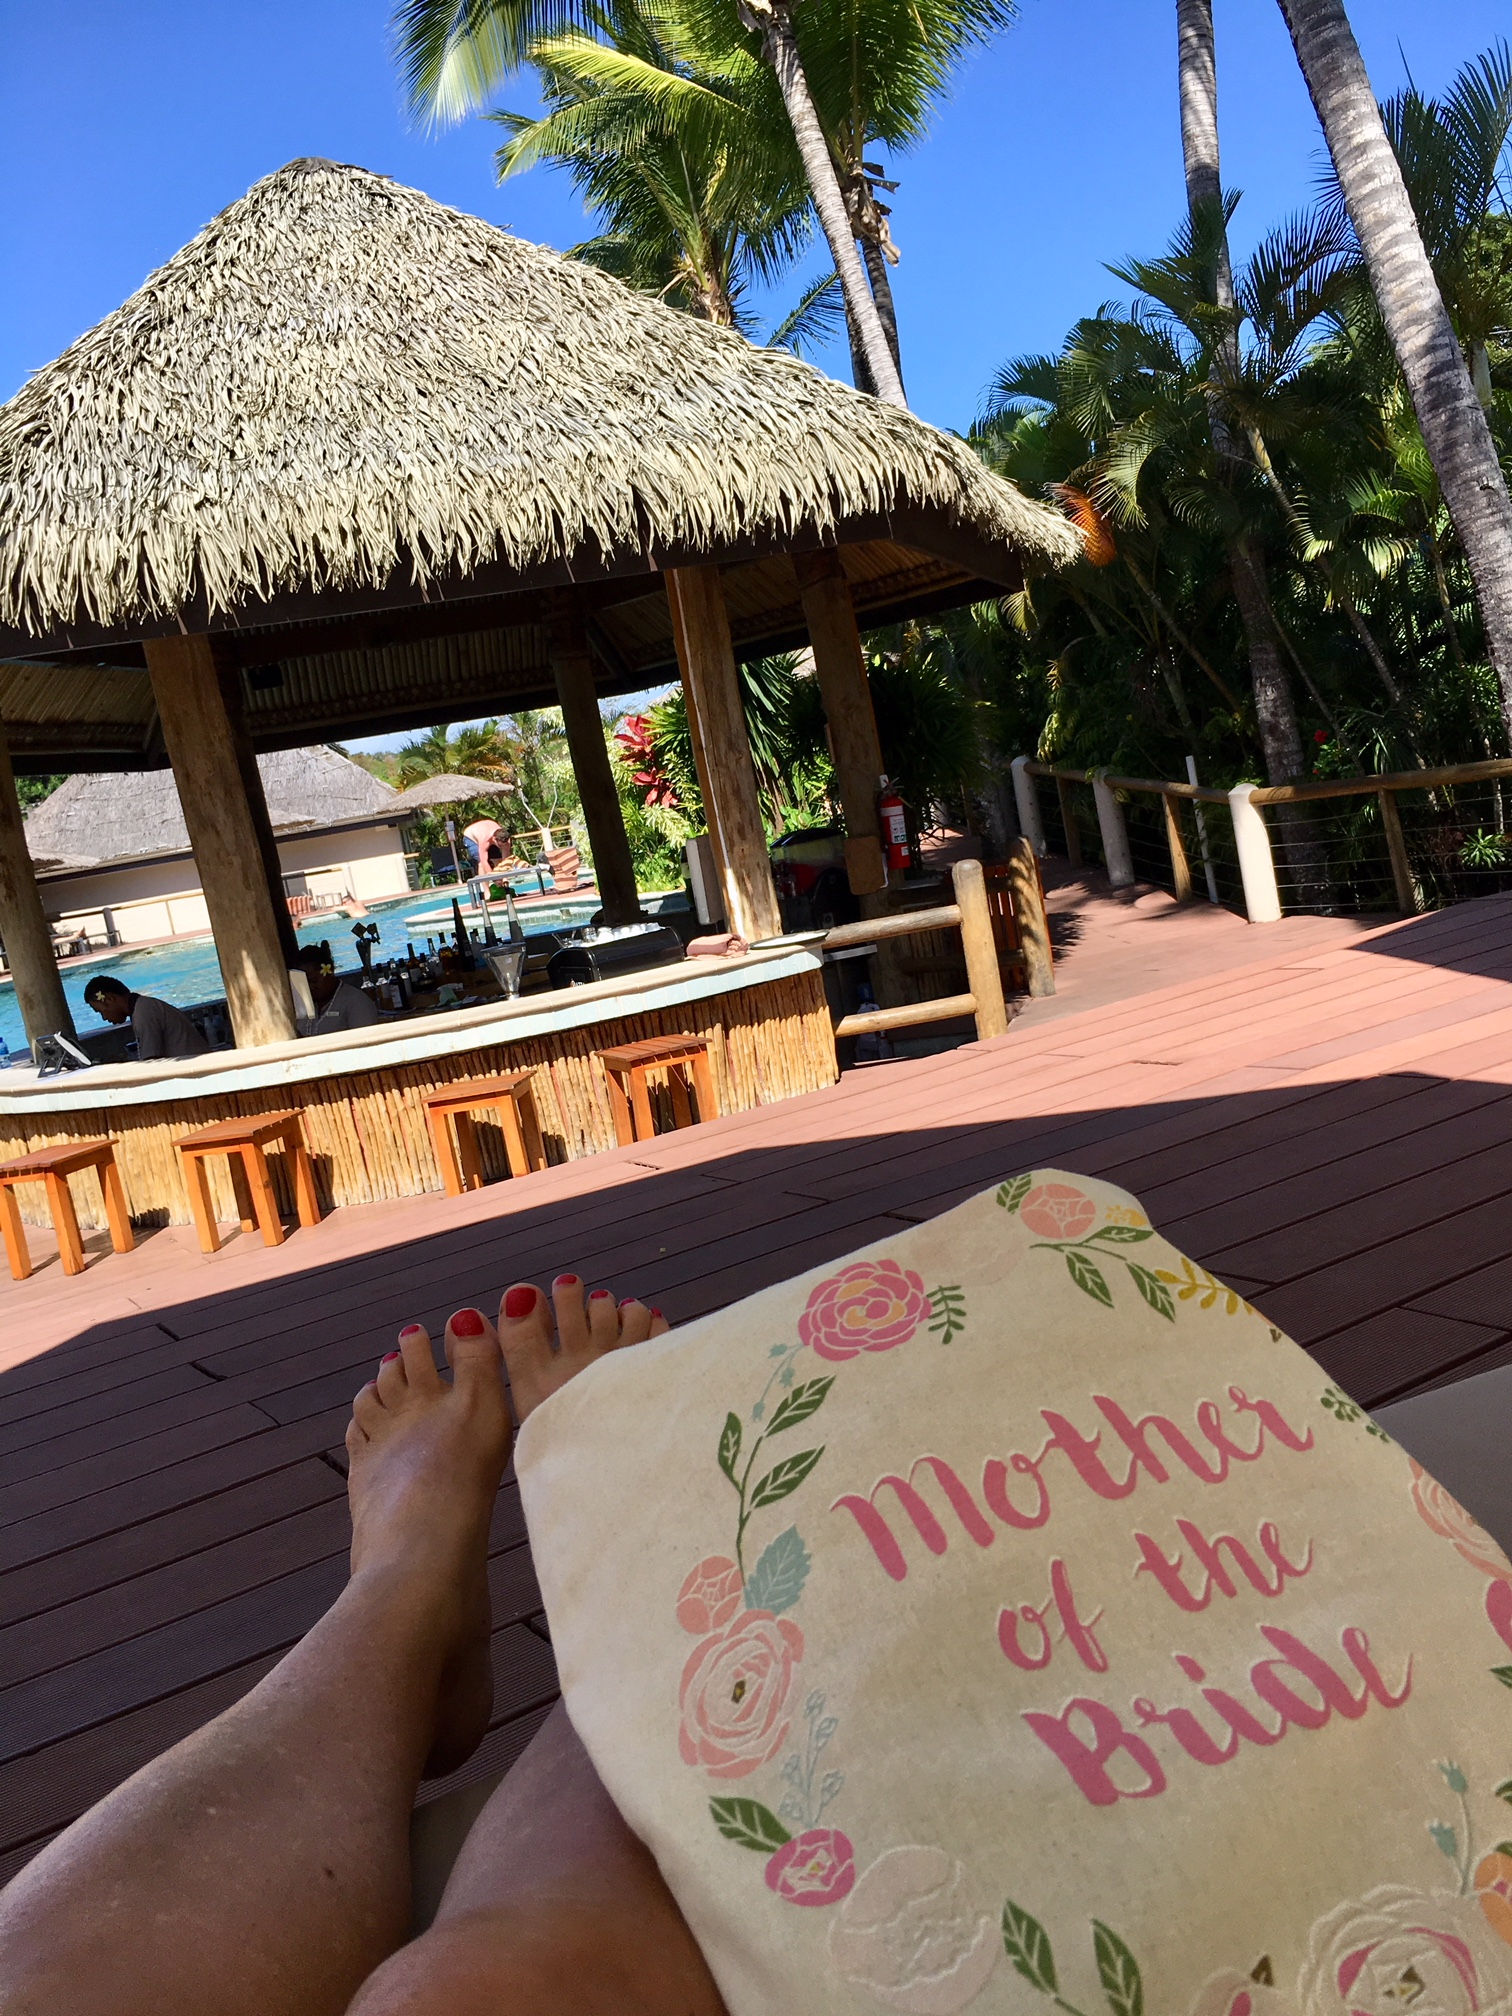 Thoughts on a Destination Wedding from the Mother of the Bride (MOB)